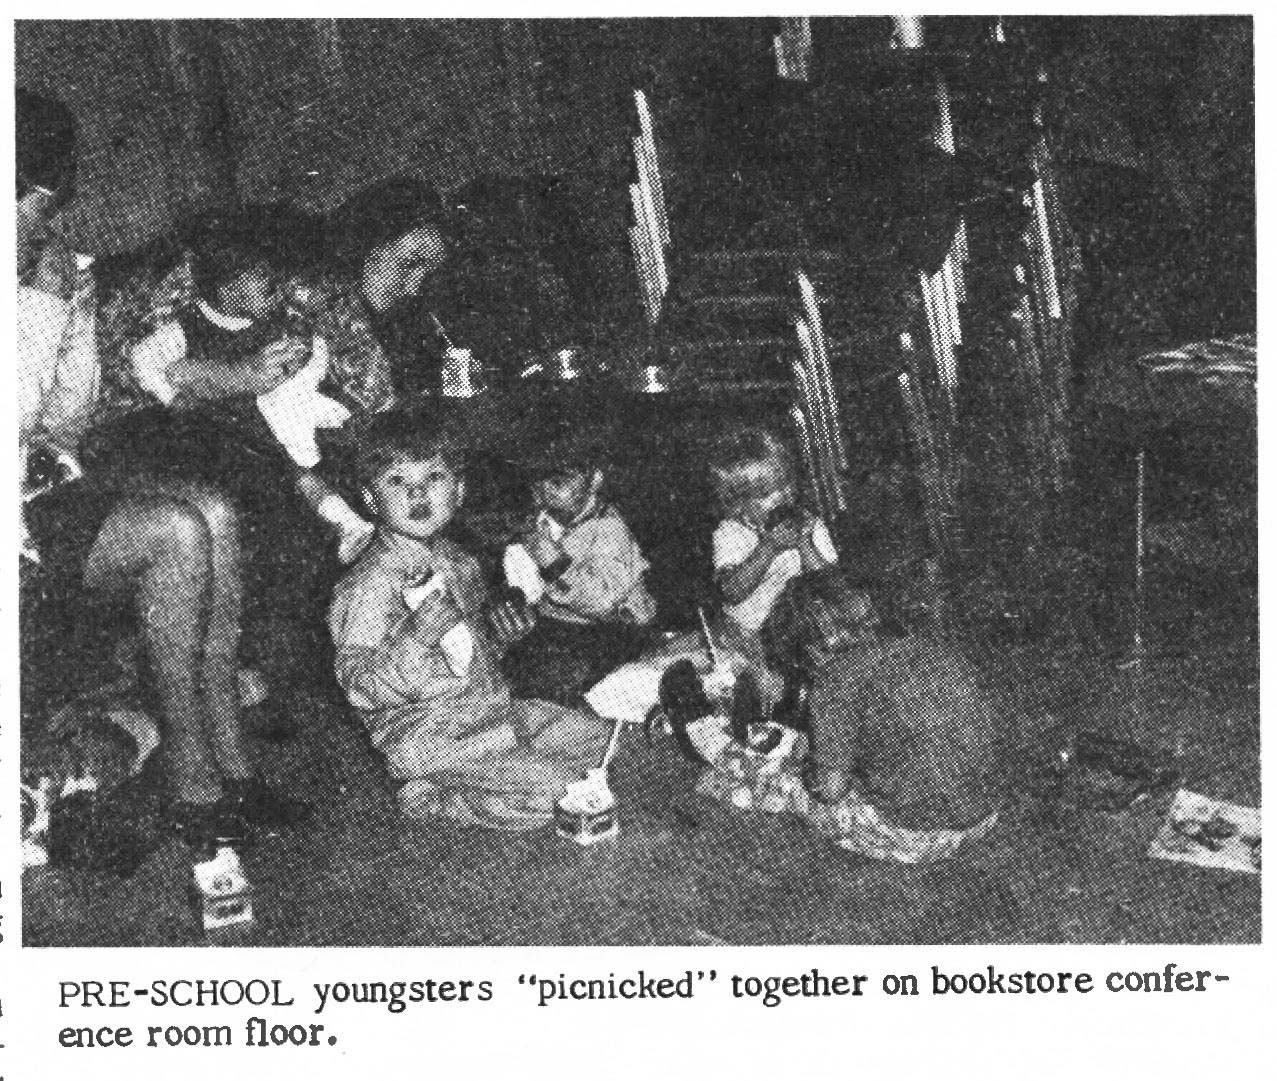 Pre-schoolers were also invited to the 1970 Christmas party, where mothers watched over them while they picnicked and enjoyed the festivities.